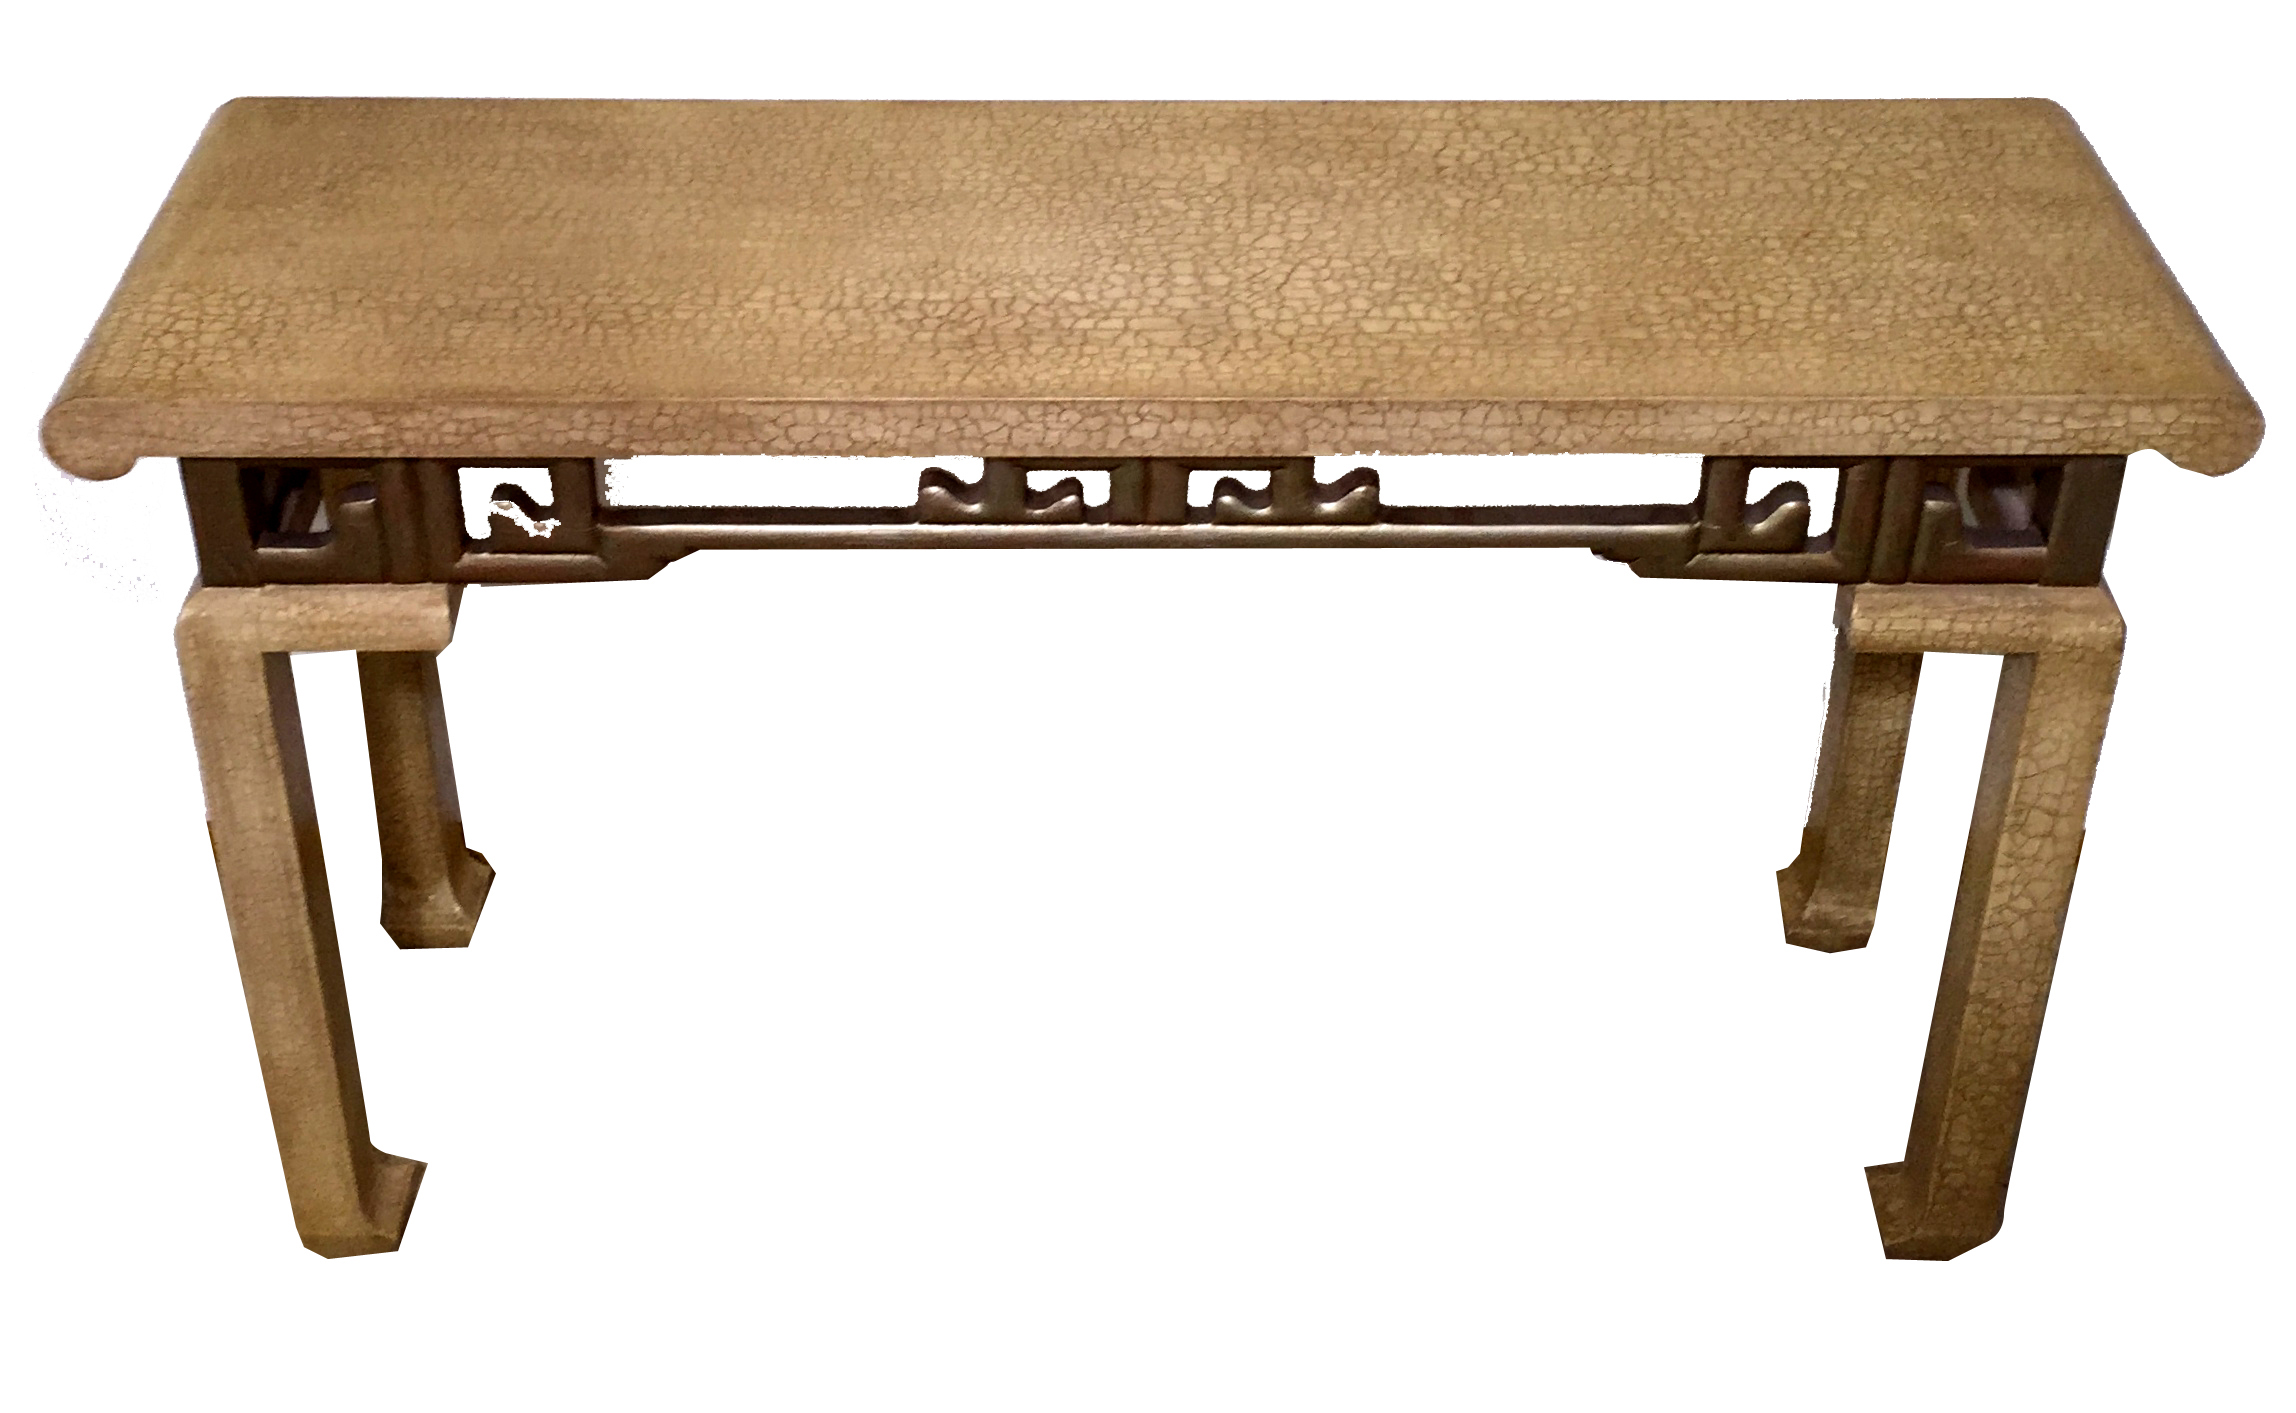 1975 Vintage Baker Asian Inspired Console Table